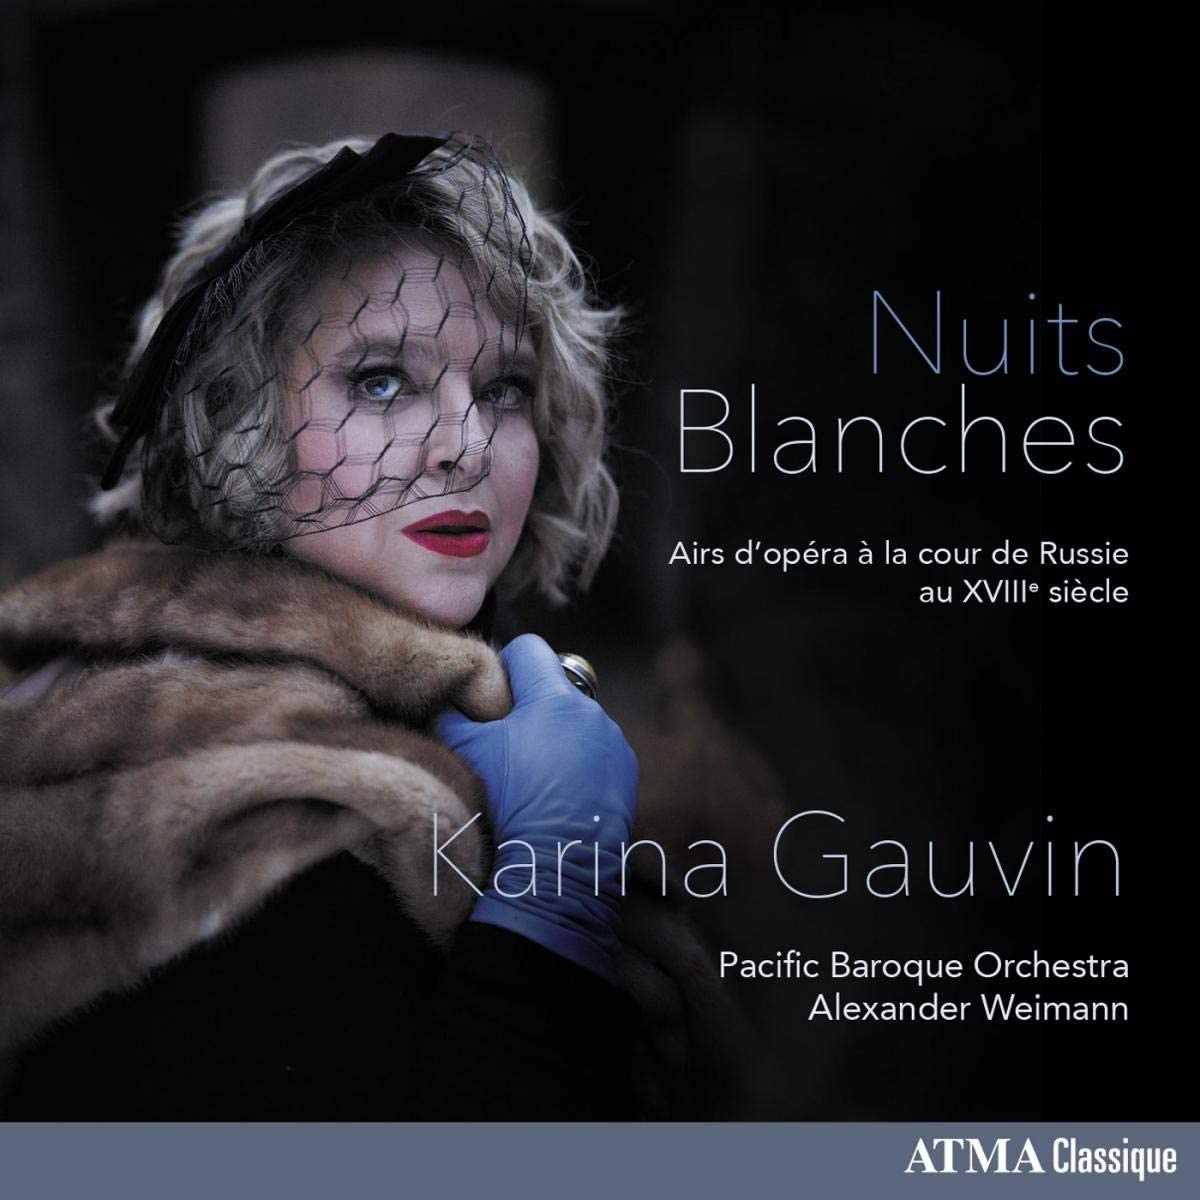 Review of Karina Gauvin: Nuits Blanches